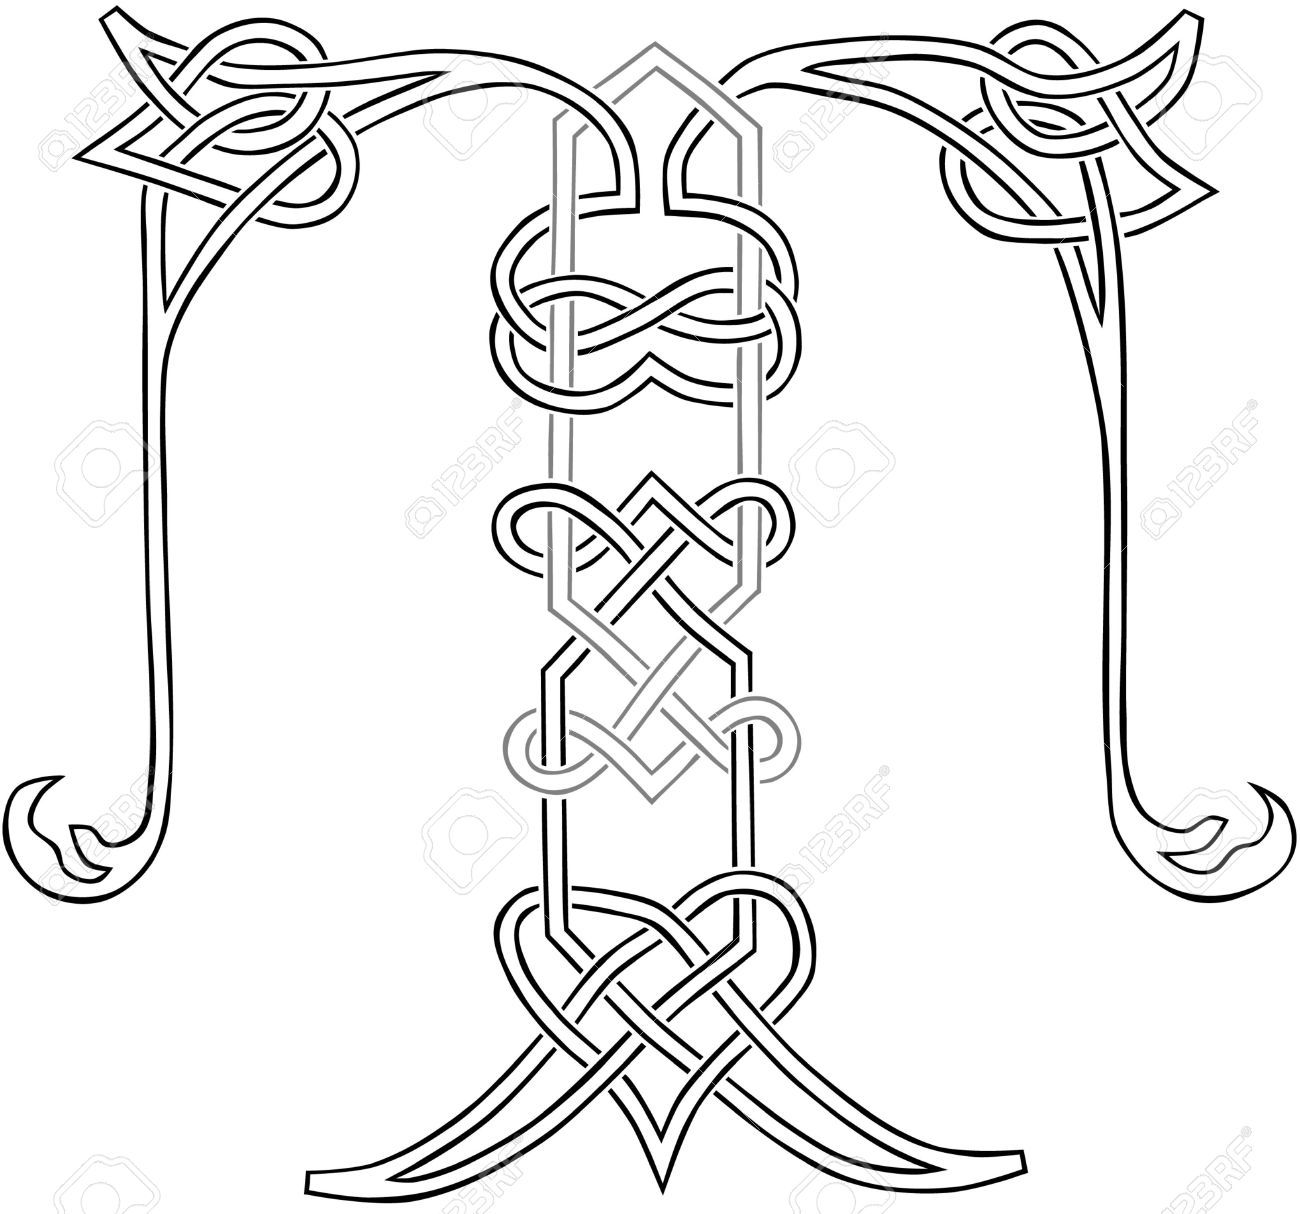 A Celtic Knot Work Capital Letter T Stylized Outline